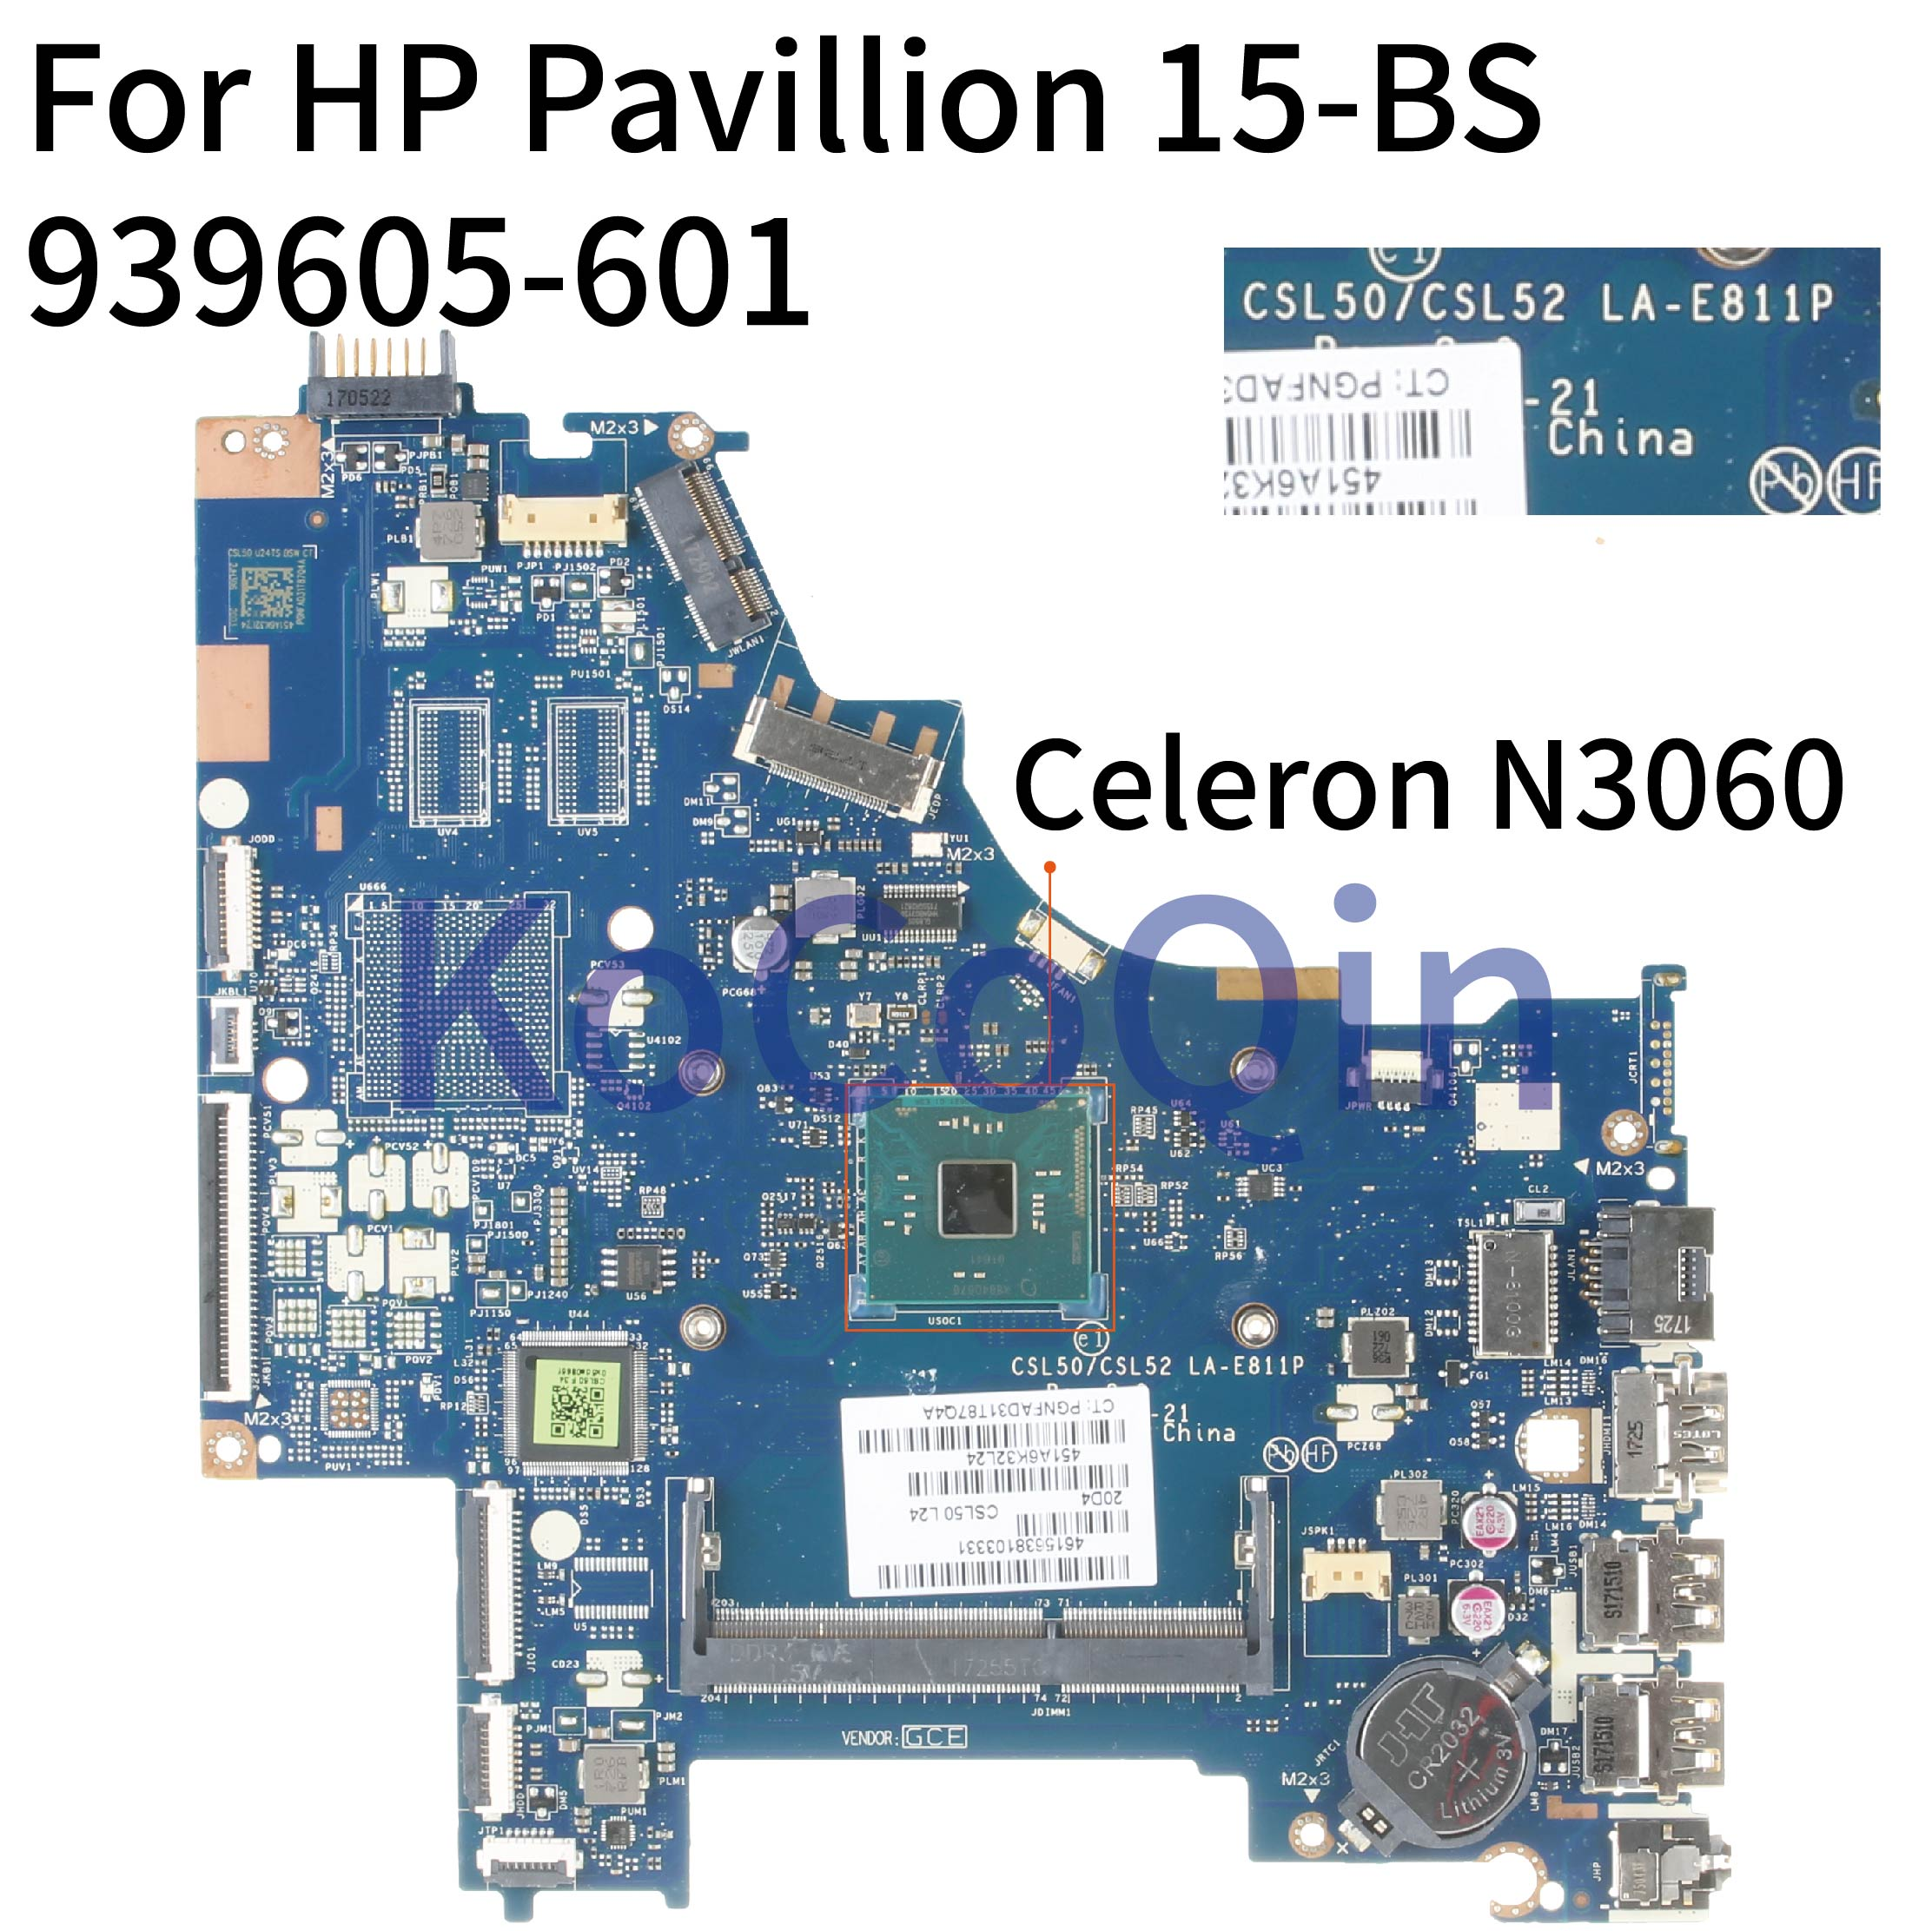 KoCoQin Laptop Motherboard For HP Pavillion 15-BS Core SR2KN Mainboard 939605-601 939605-501 LA-E811P Celeron N3060 CPU